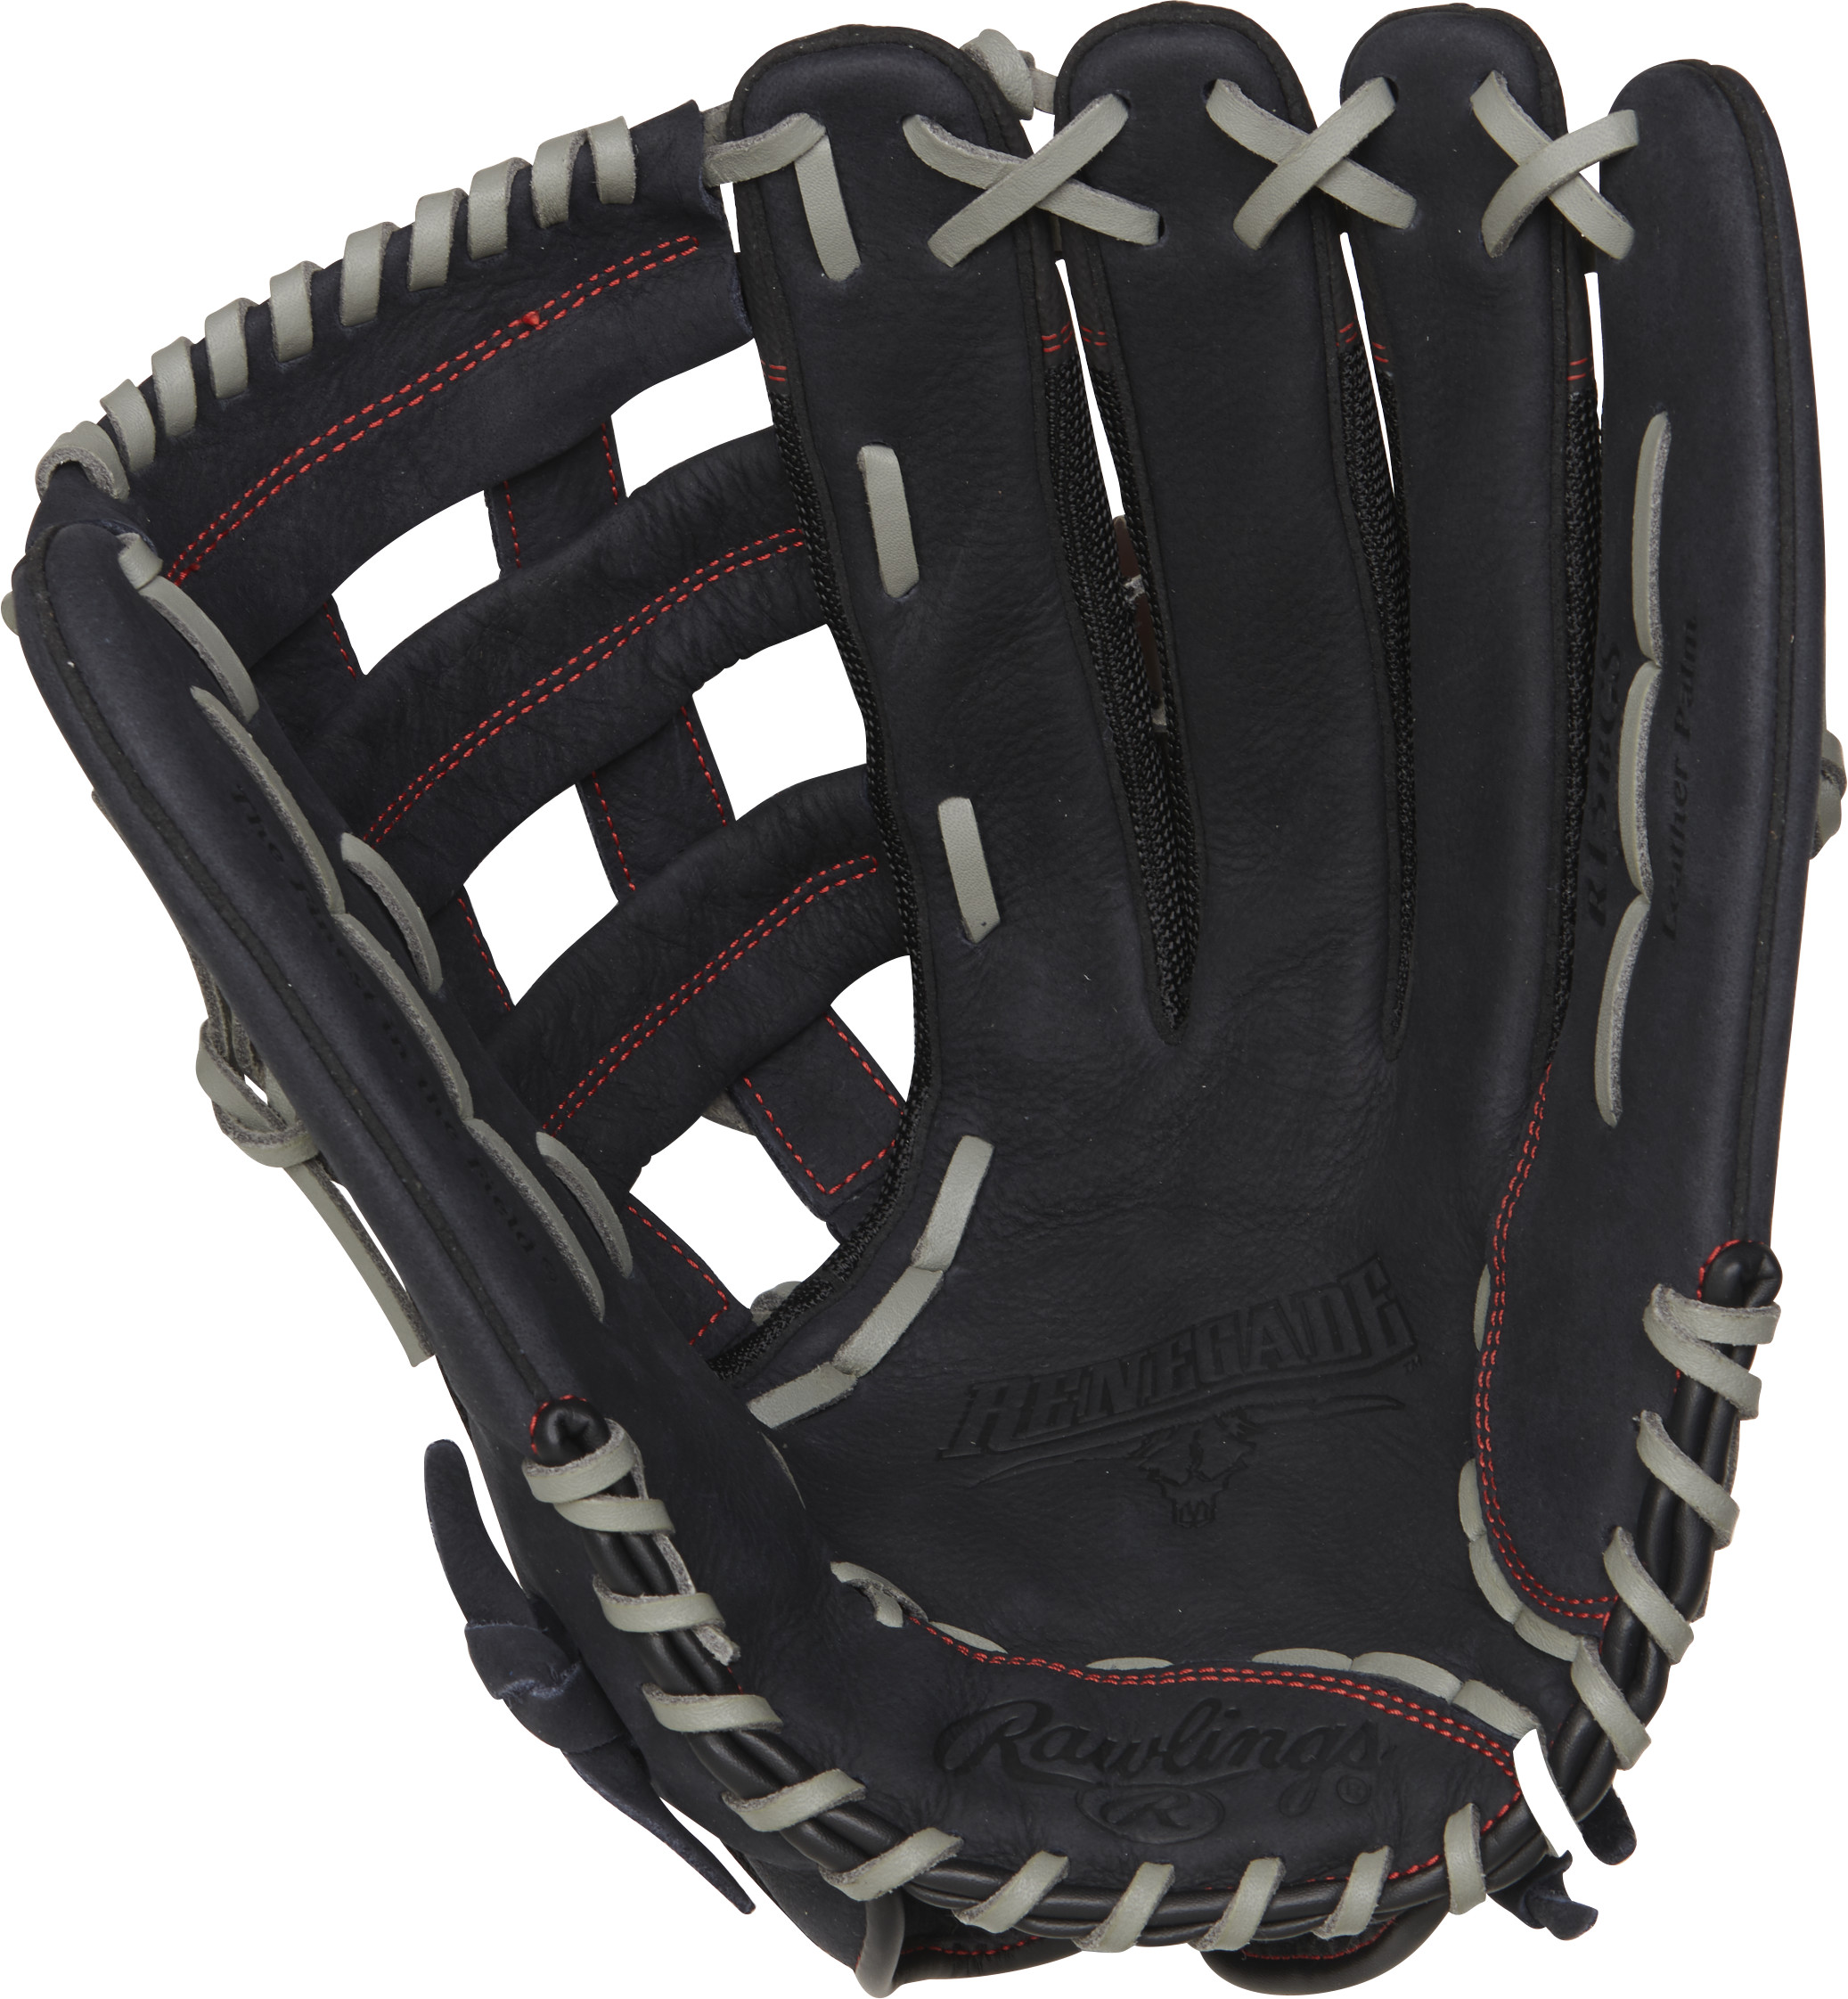 http://www.bestbatdeals.com/images/gloves/rawlings/R15BGS-1.jpg